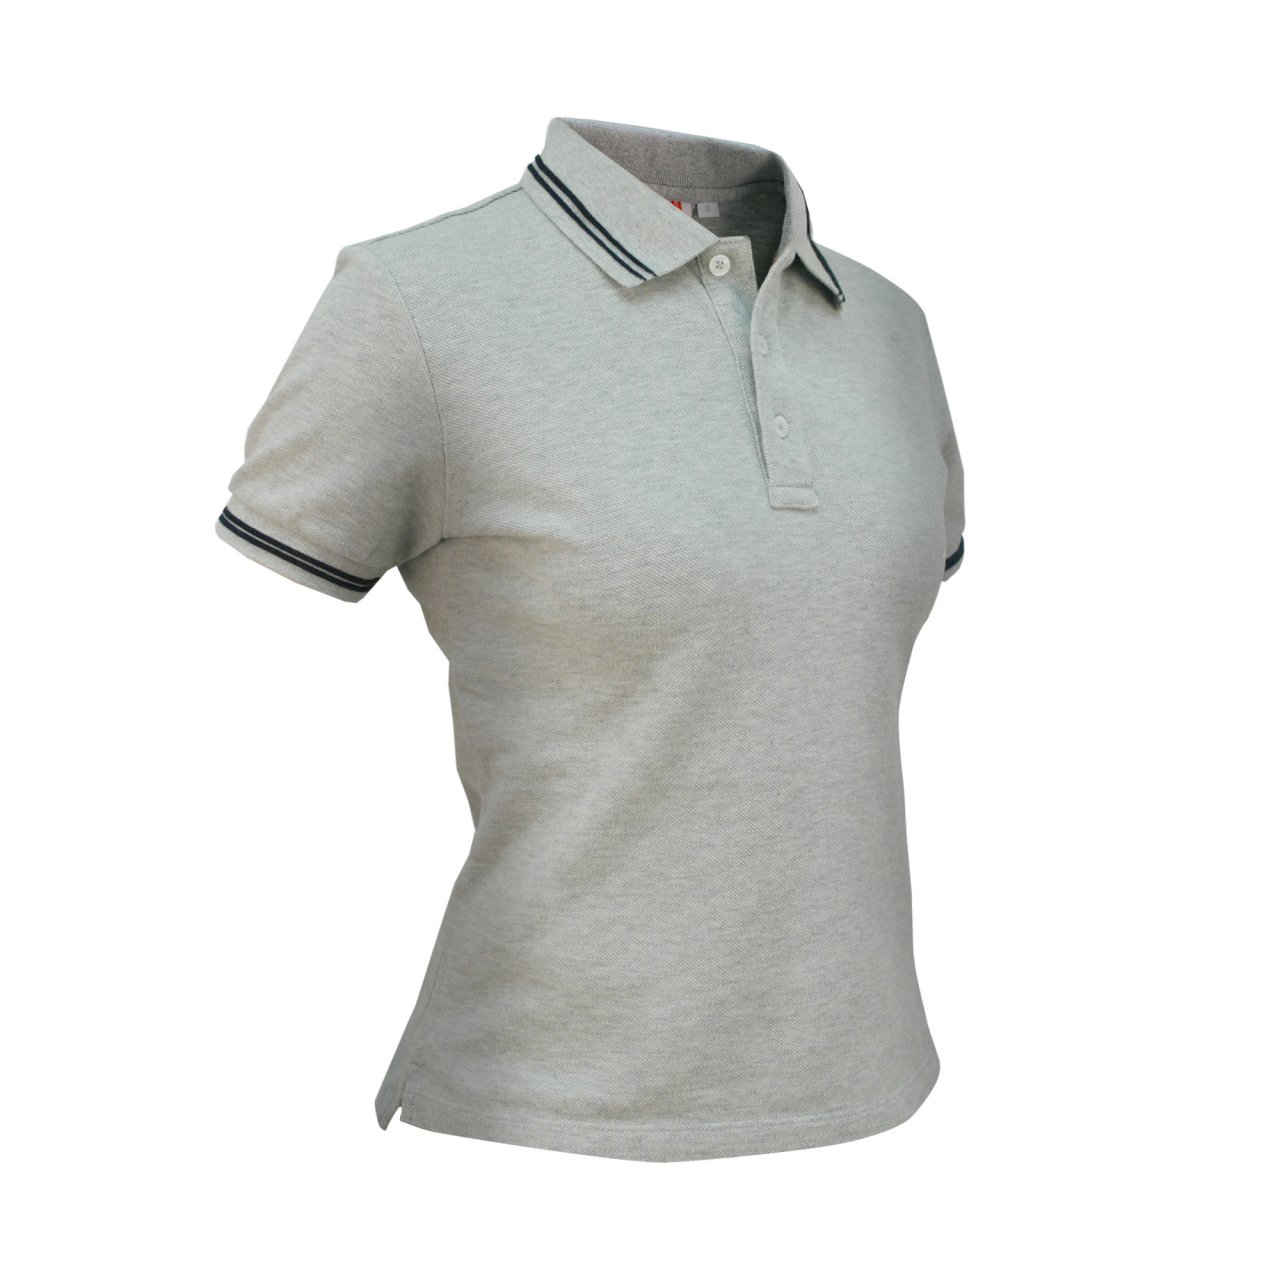 Slam Regata Polo shirt donna